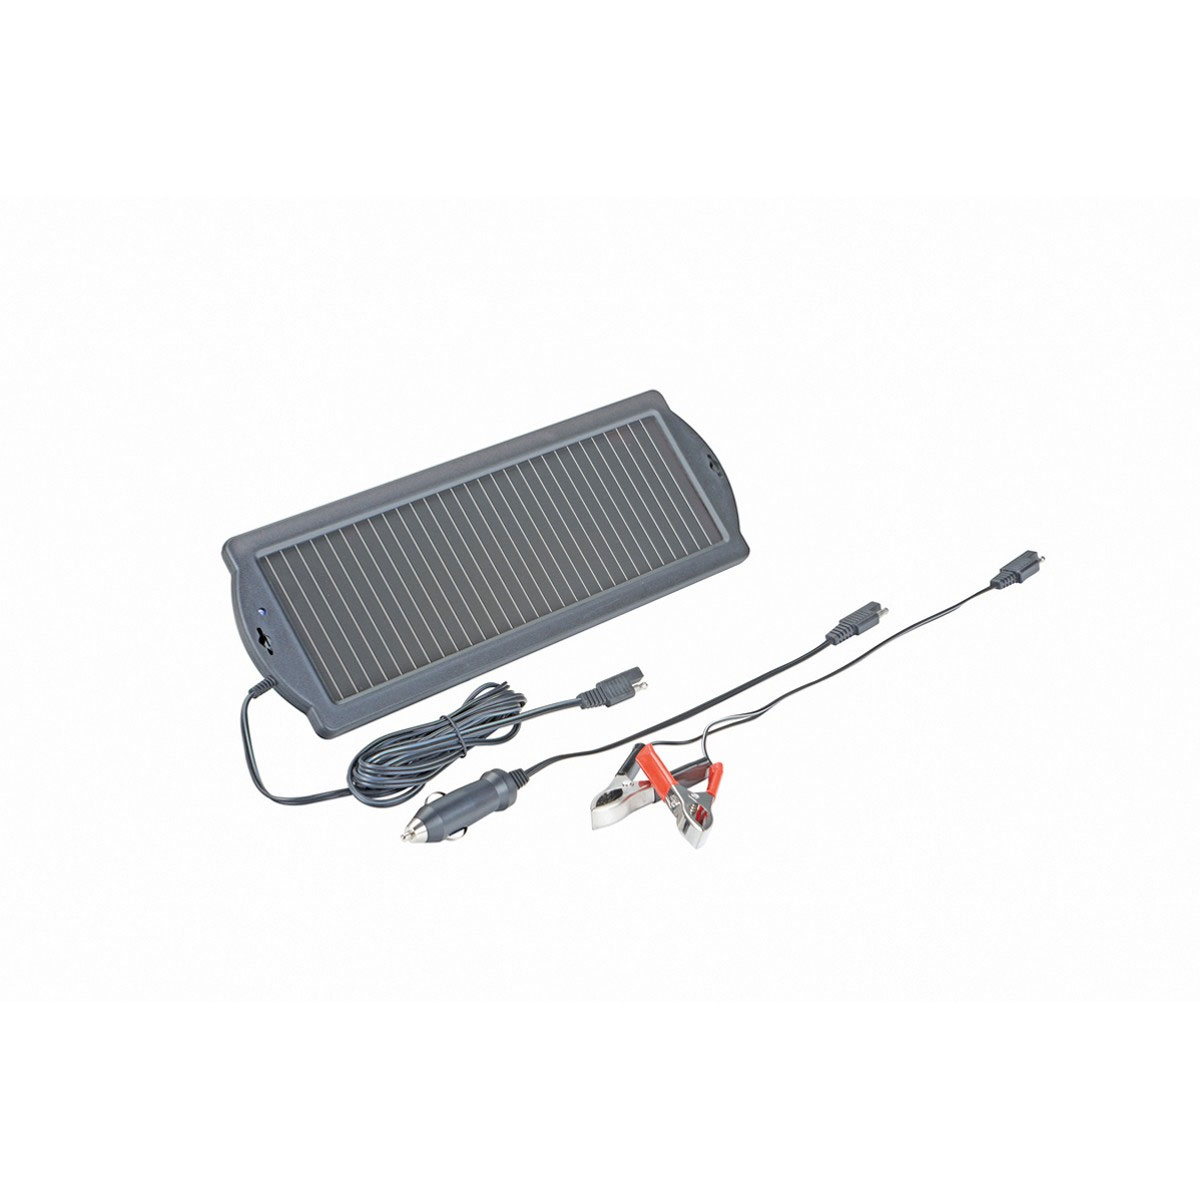 Harbor Freight Solar Car Battery Charger